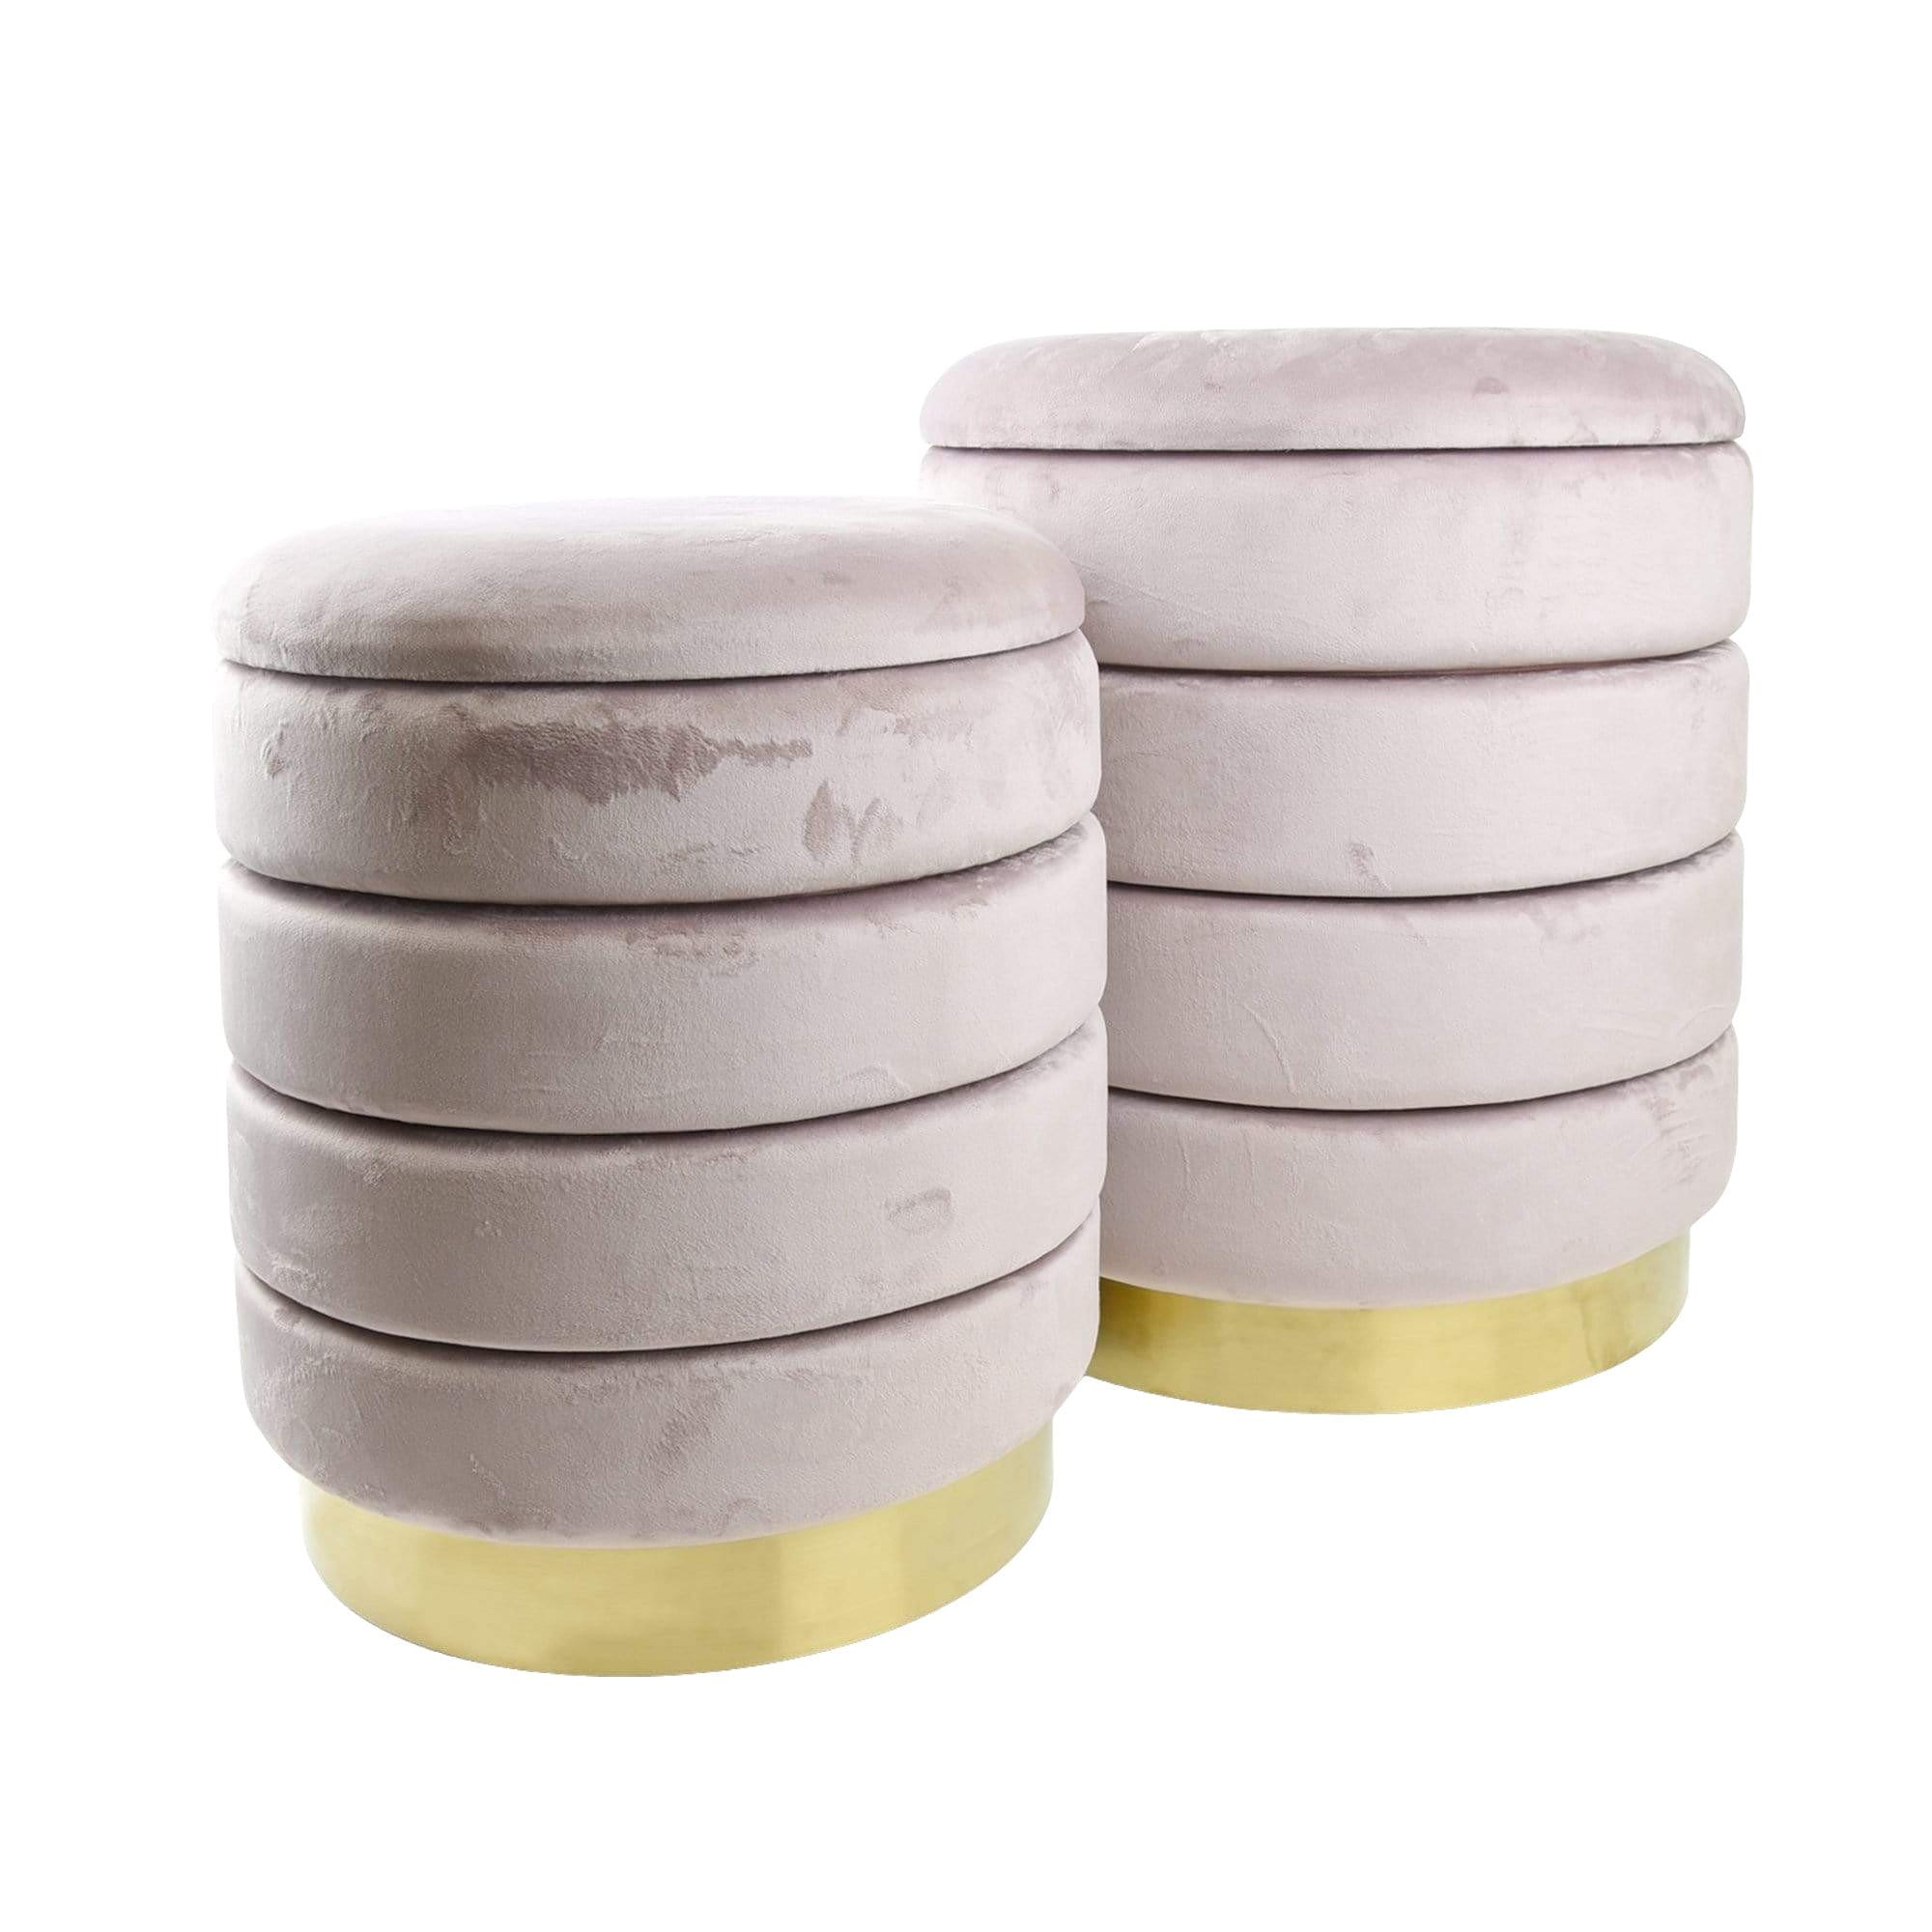 Set of 2 Storage Ottomans with Gold Base Dusky Pink 44cm 1PK